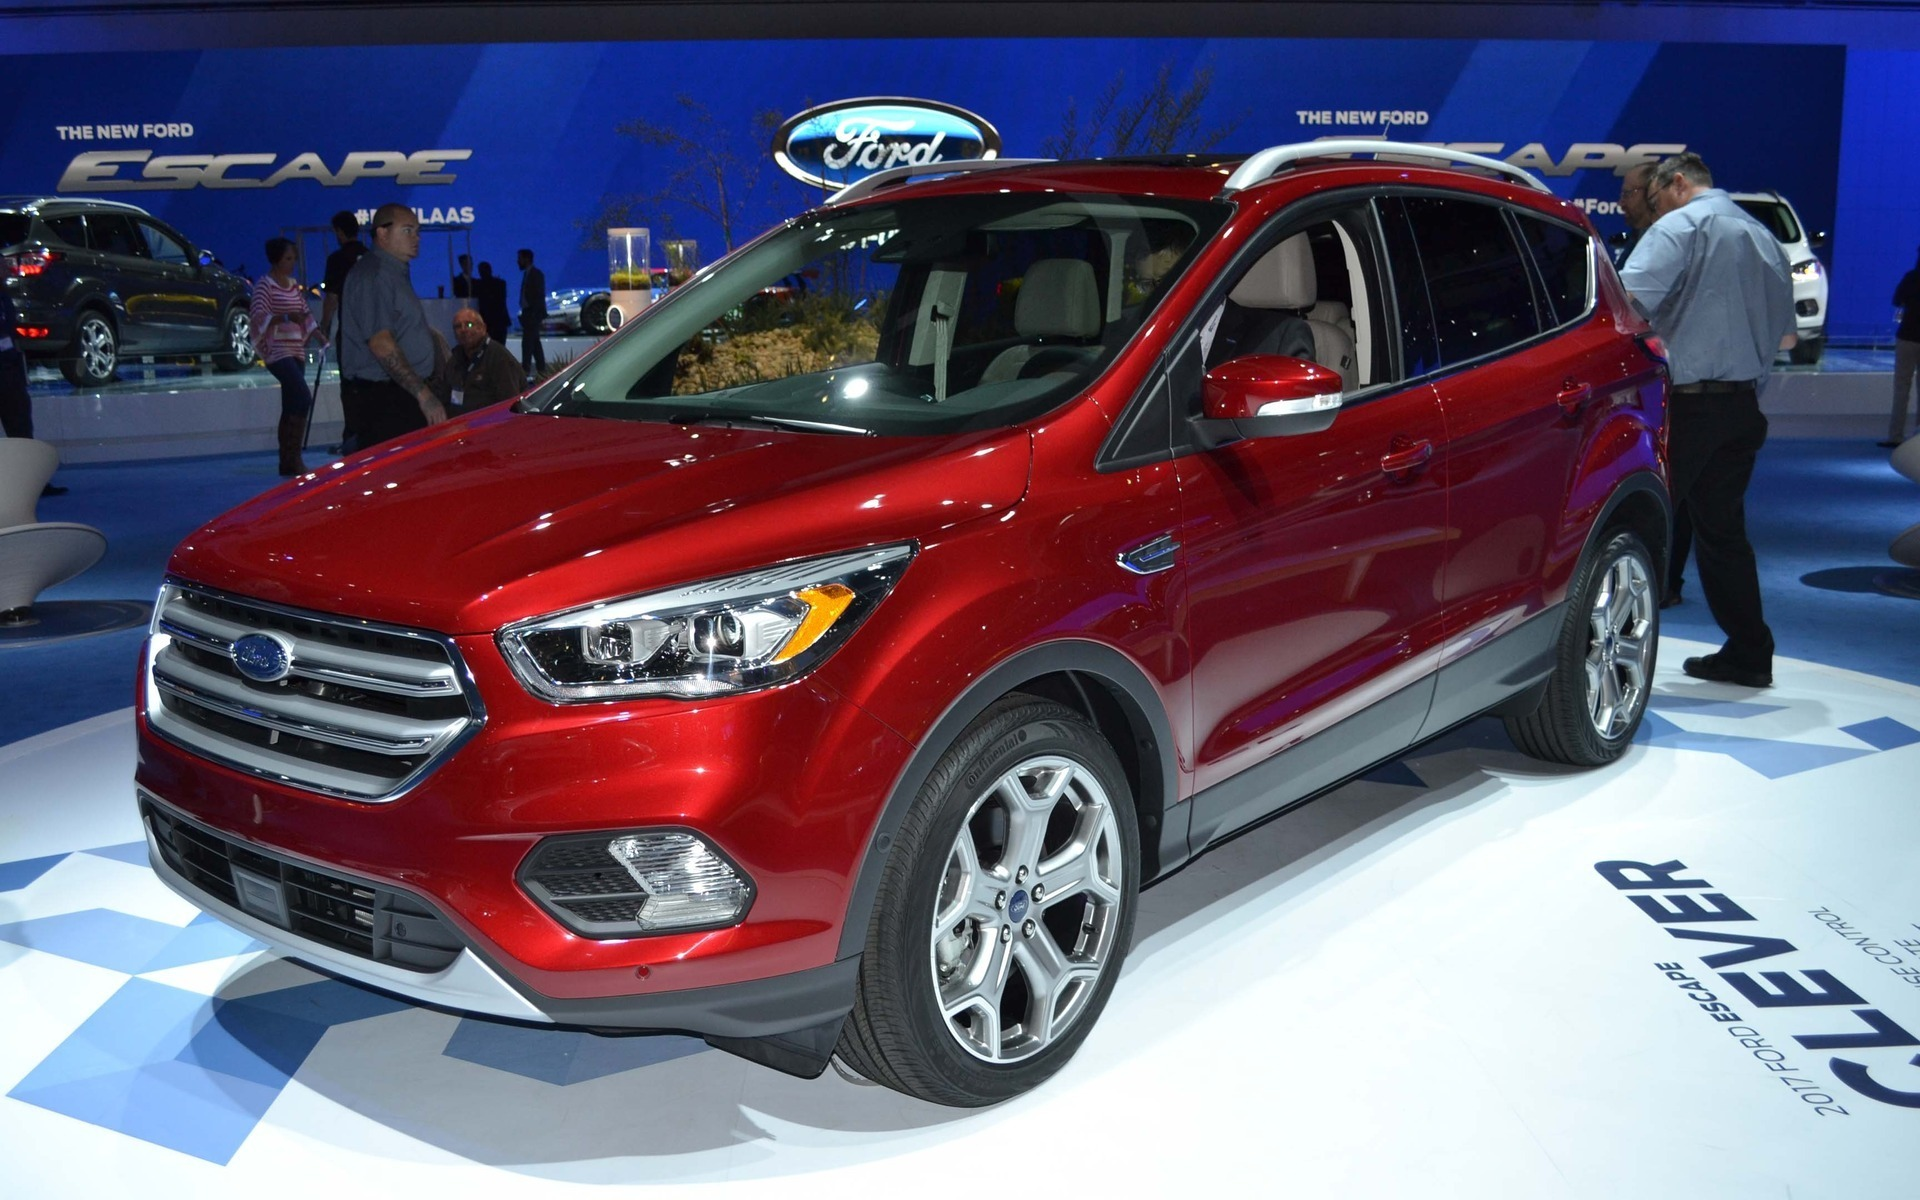 2017 Ford Escape Building On Its Success 2 46